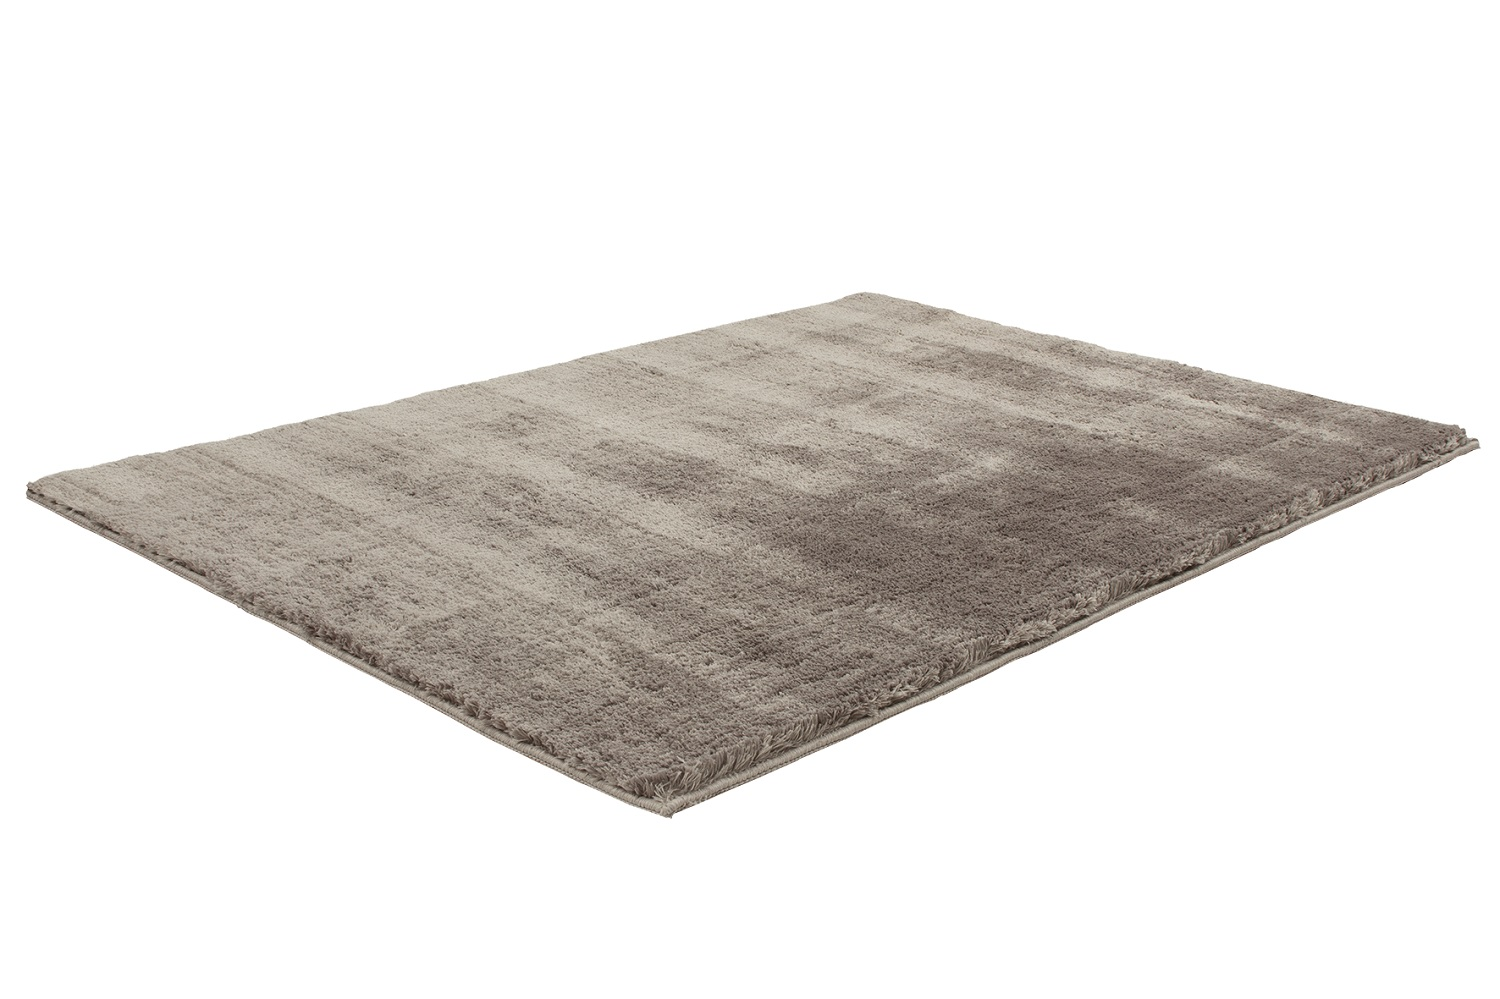 Teppich Hochflor Taupe Teppich Obsession Curacao 490 Taupe Raum Quadrat